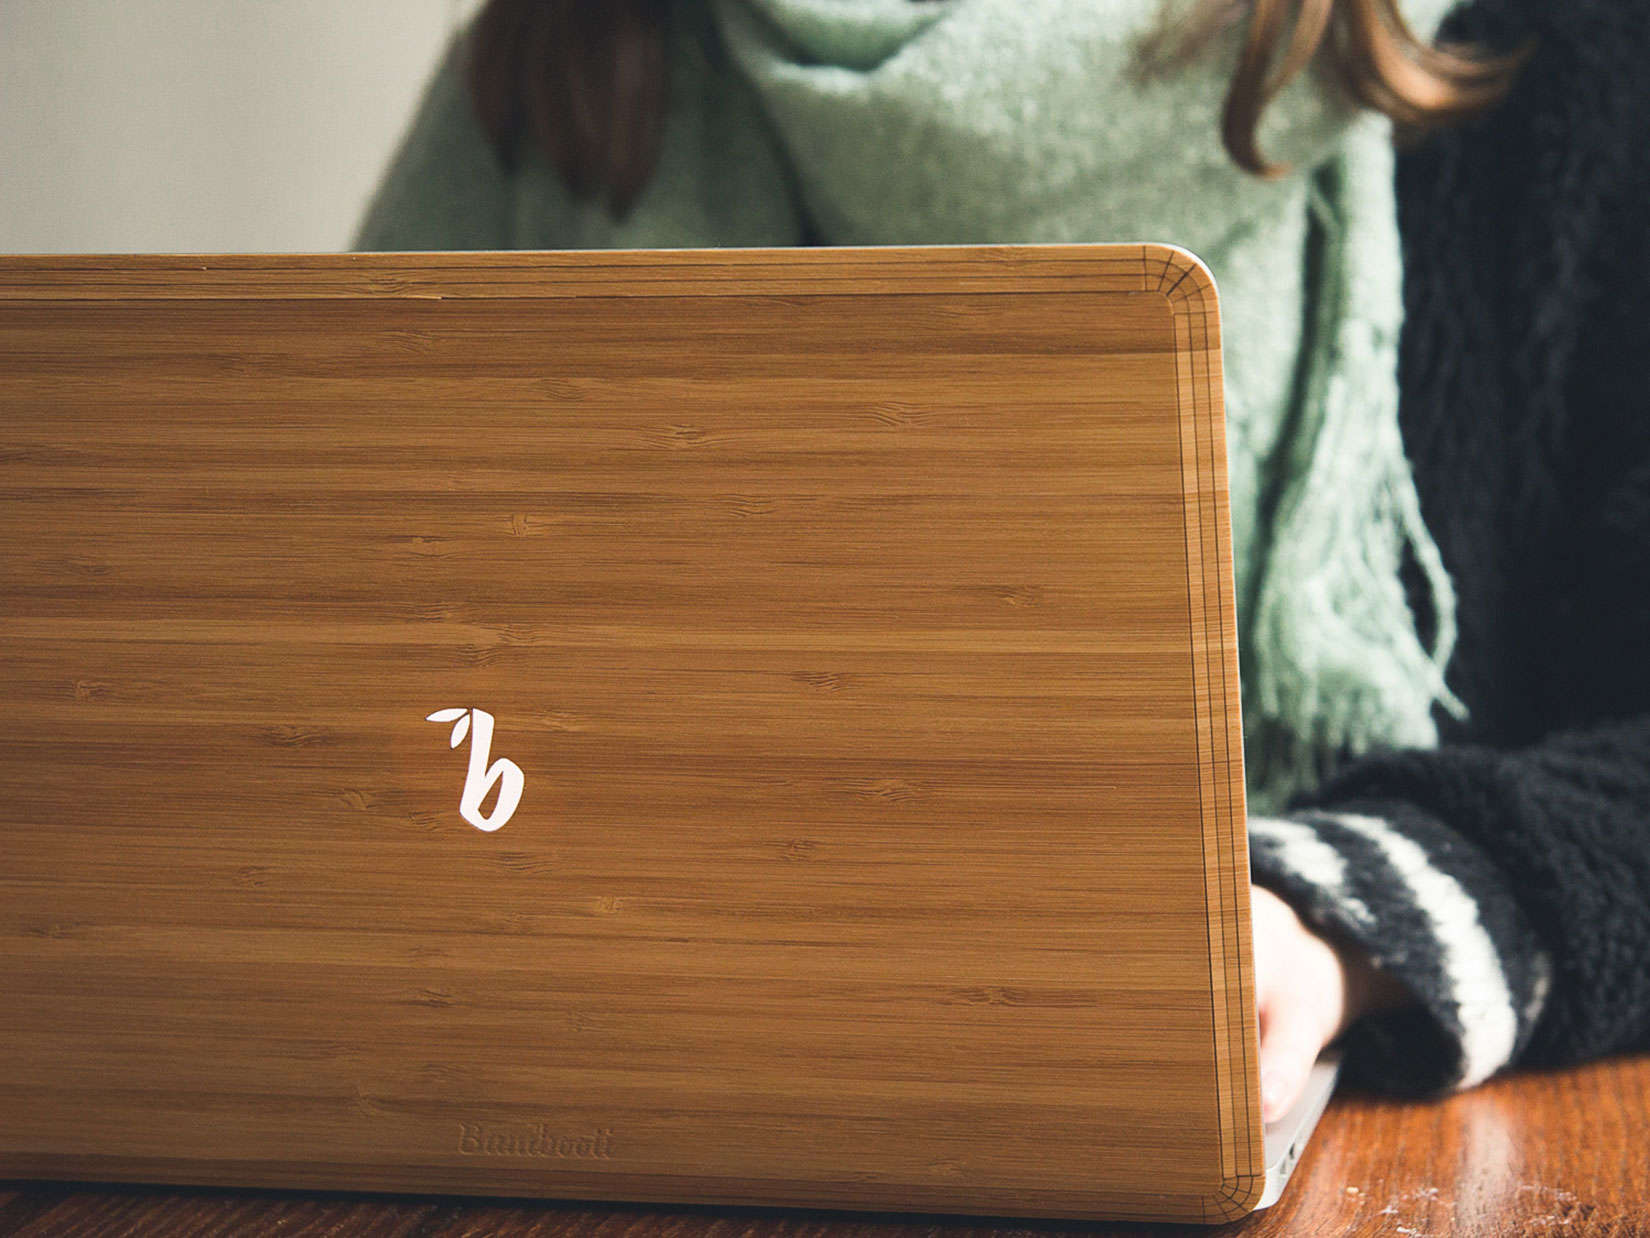 These Wooden Skins Are A Natural Fit For Your MacBook